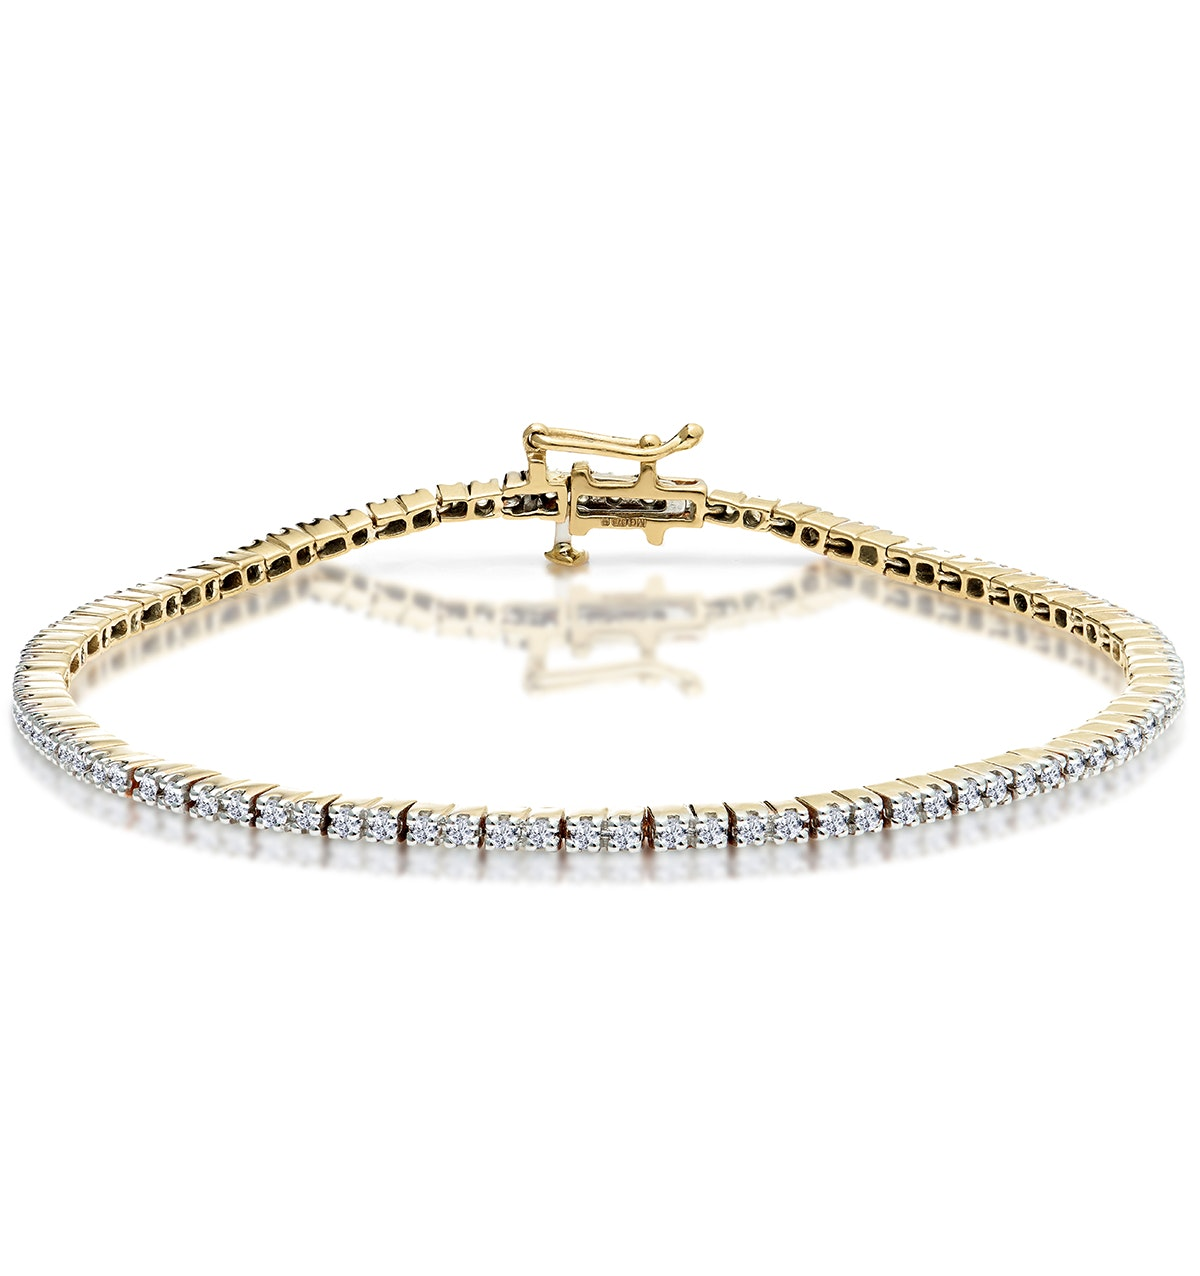 1ct Diamond Tennis Bracelet Claw Set in 9K Yellow Gold